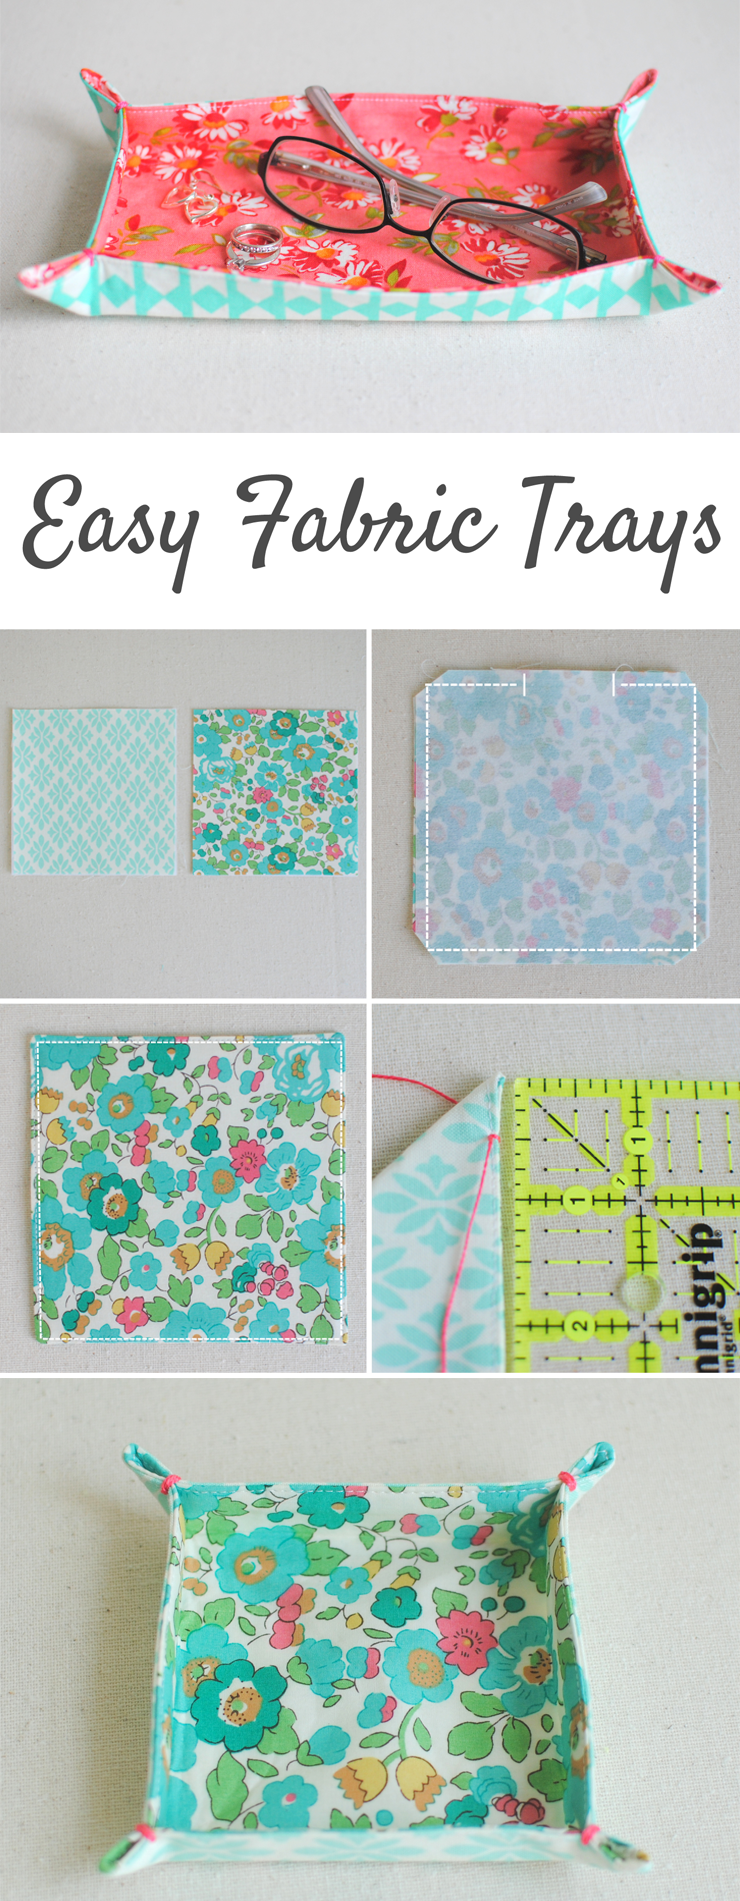 Fabric Trays at Clover & Violet